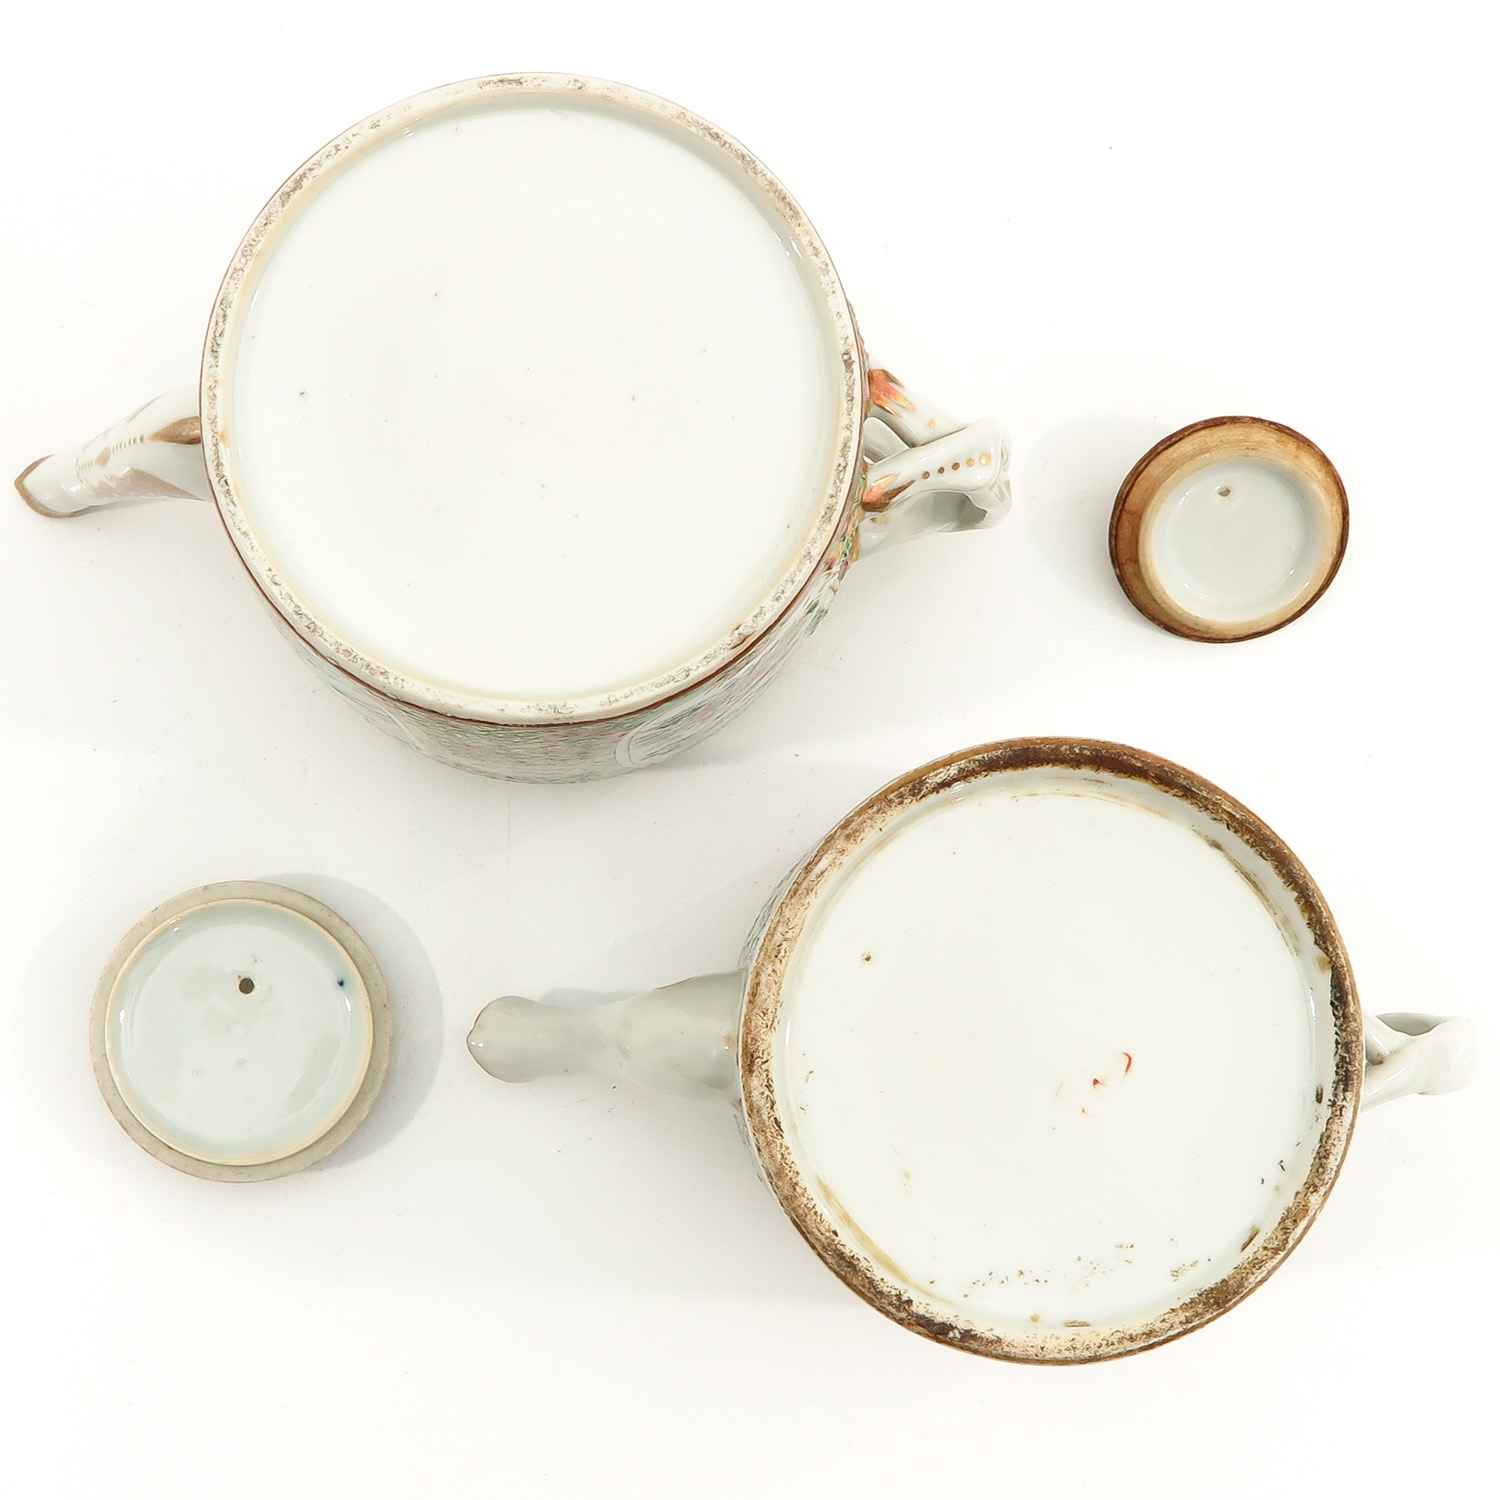 A Lot of 2 Cantonese Teapots - Image 6 of 9